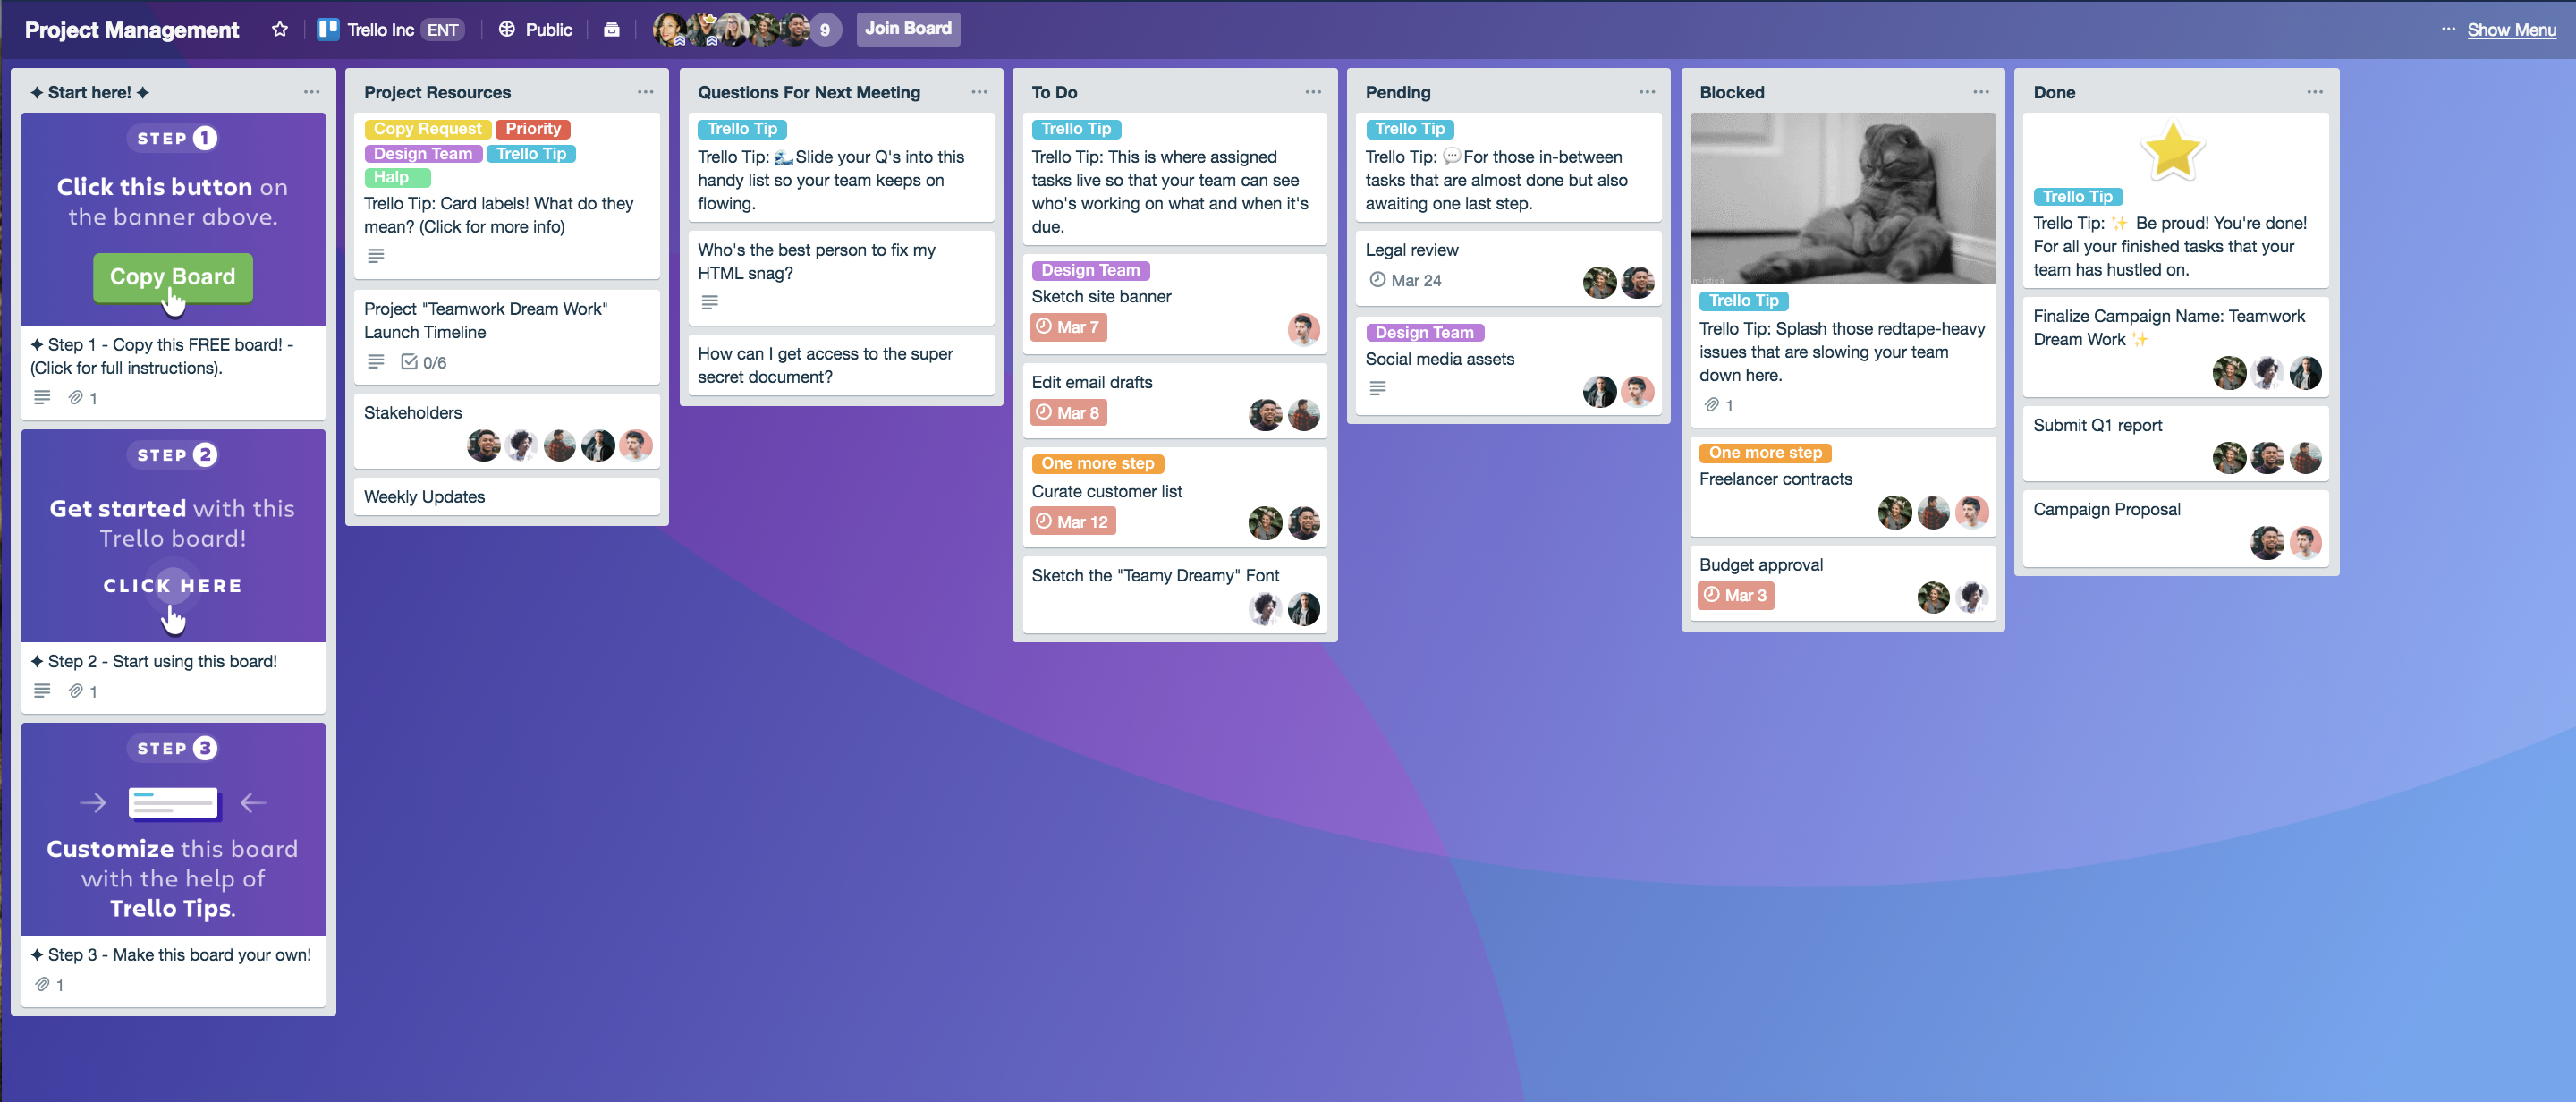 project management workflow in trello board